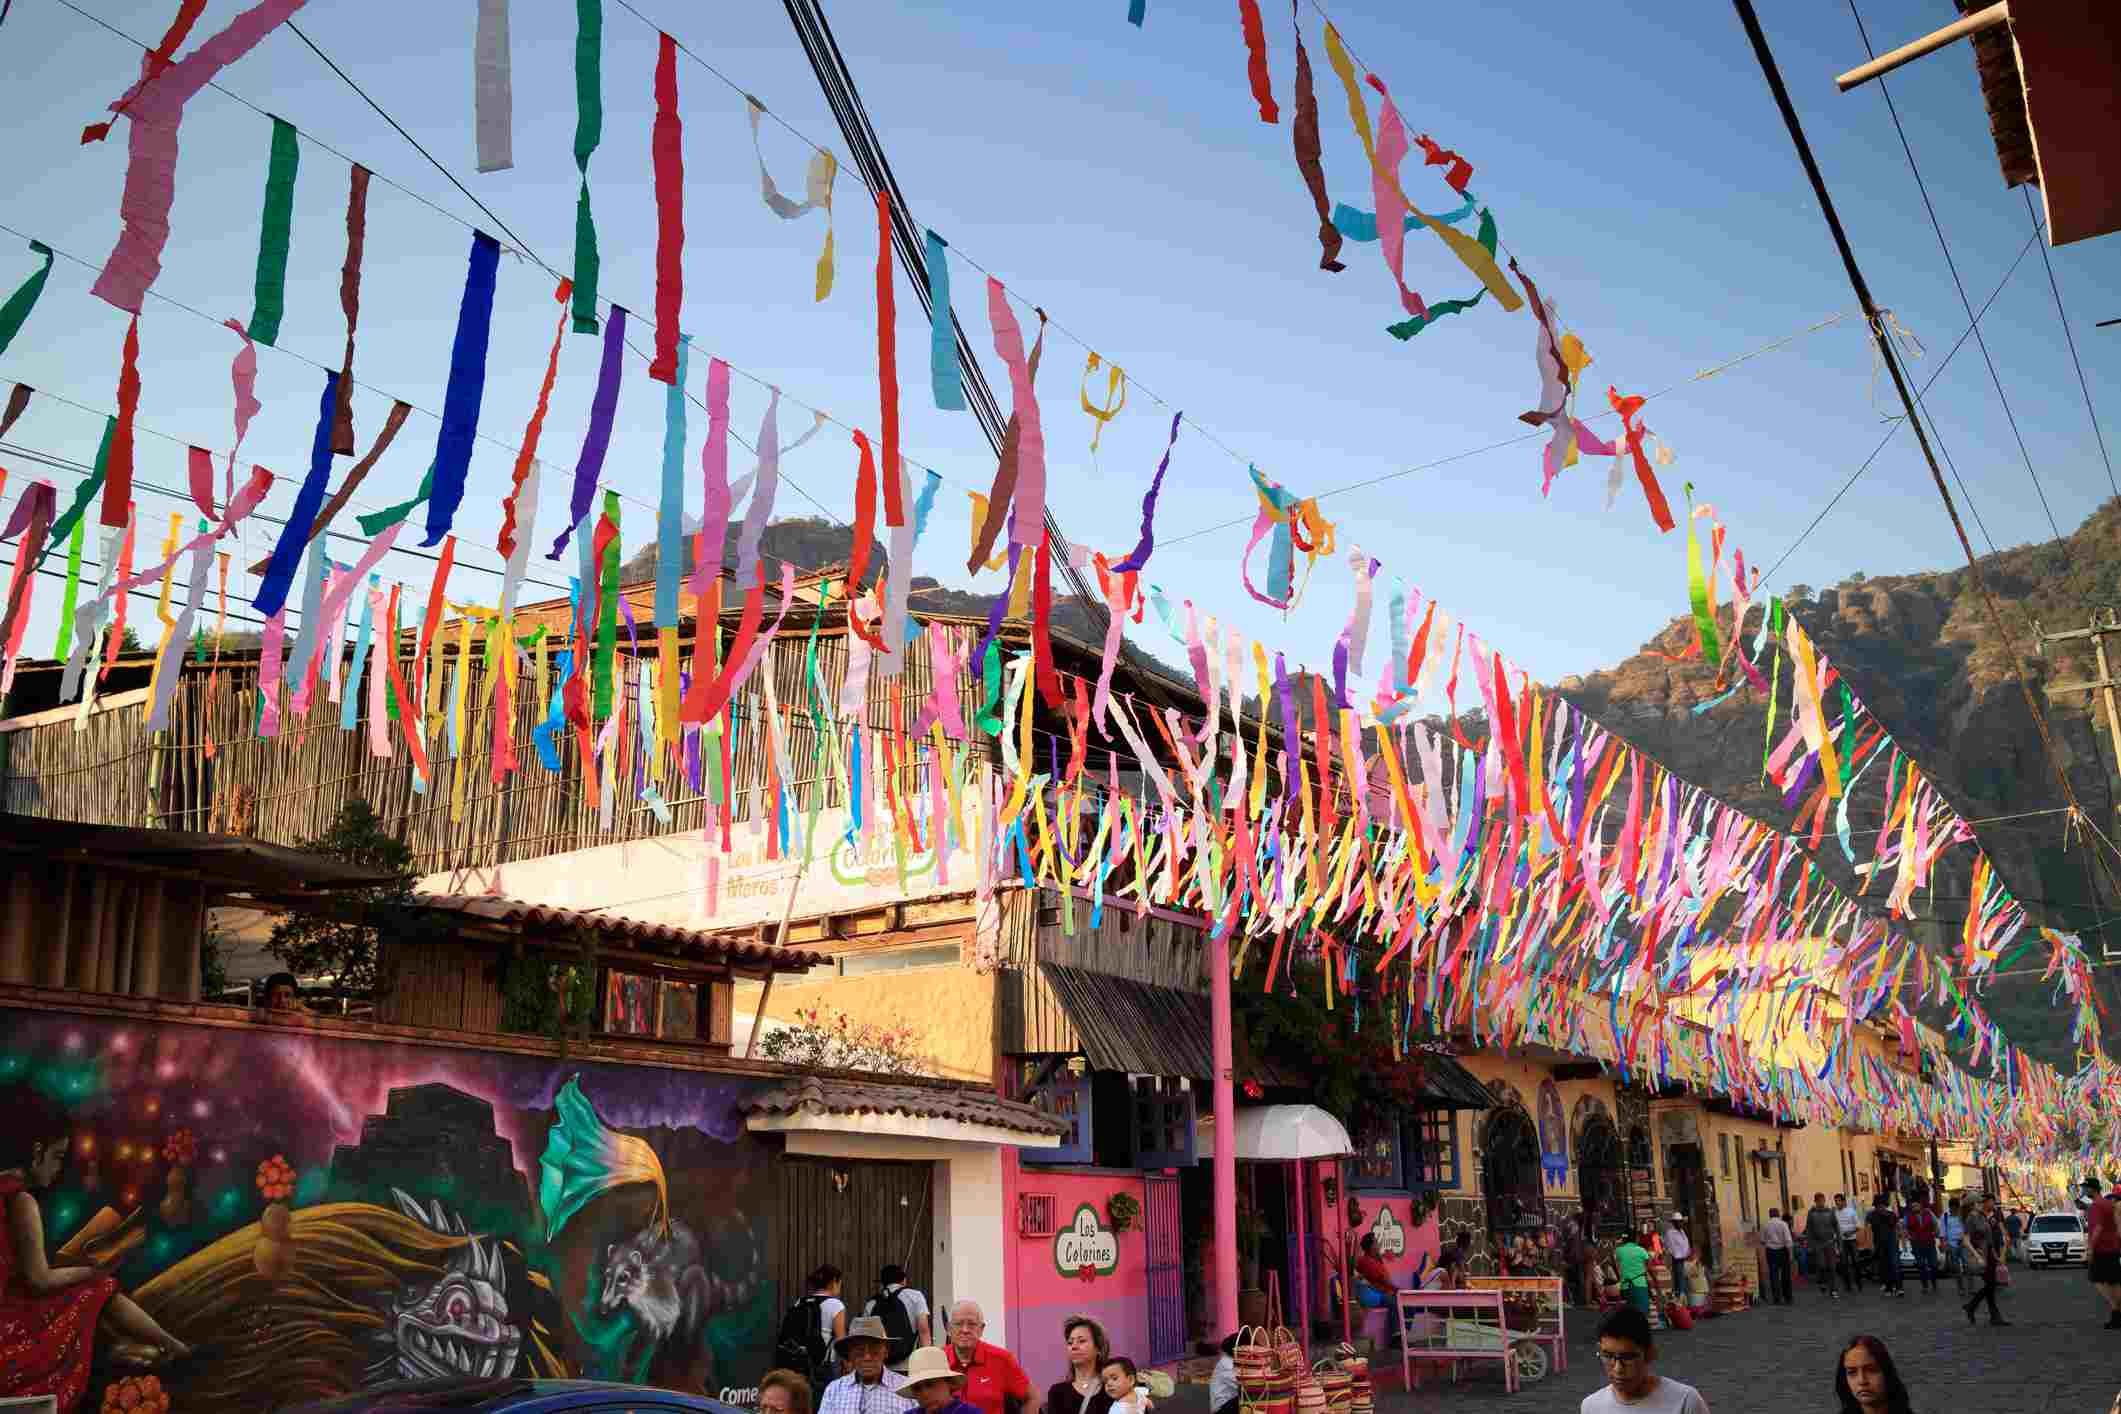 Fiesta time in Tepoztlan, Mexico, with brightly colored streamers and decorations